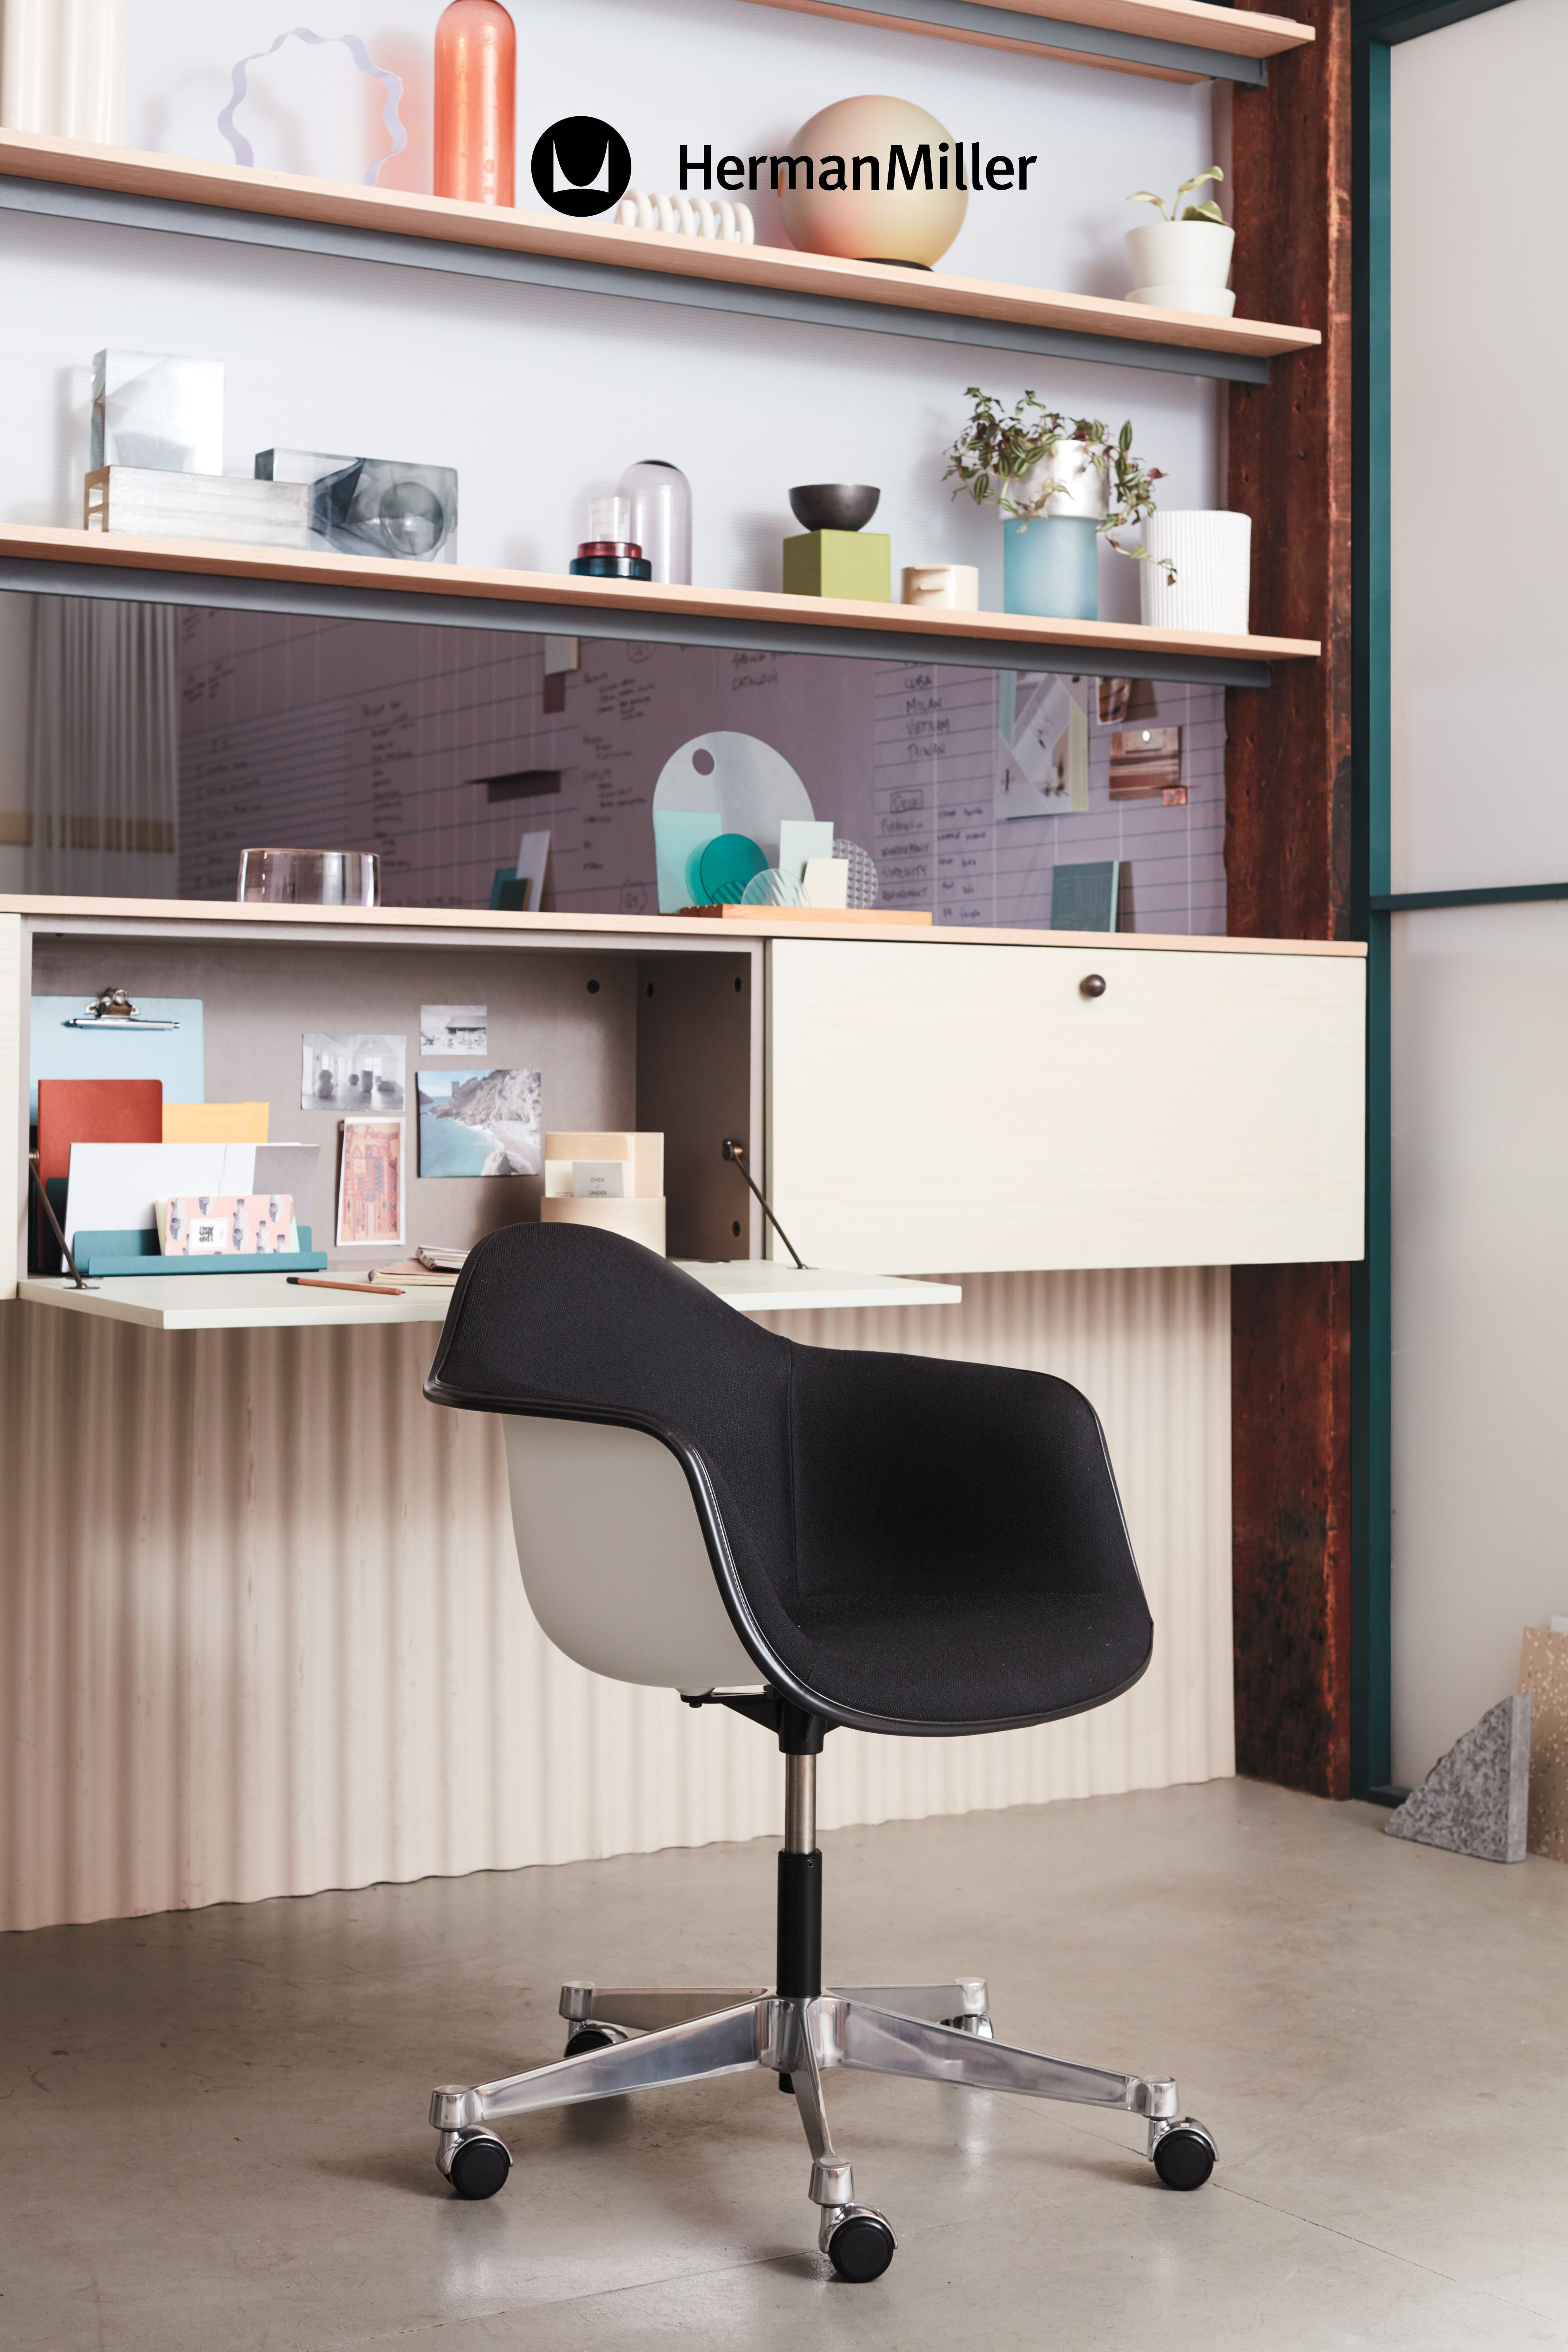 Looking To Spruce Up Your Work Space Herman Miller Has A Wide